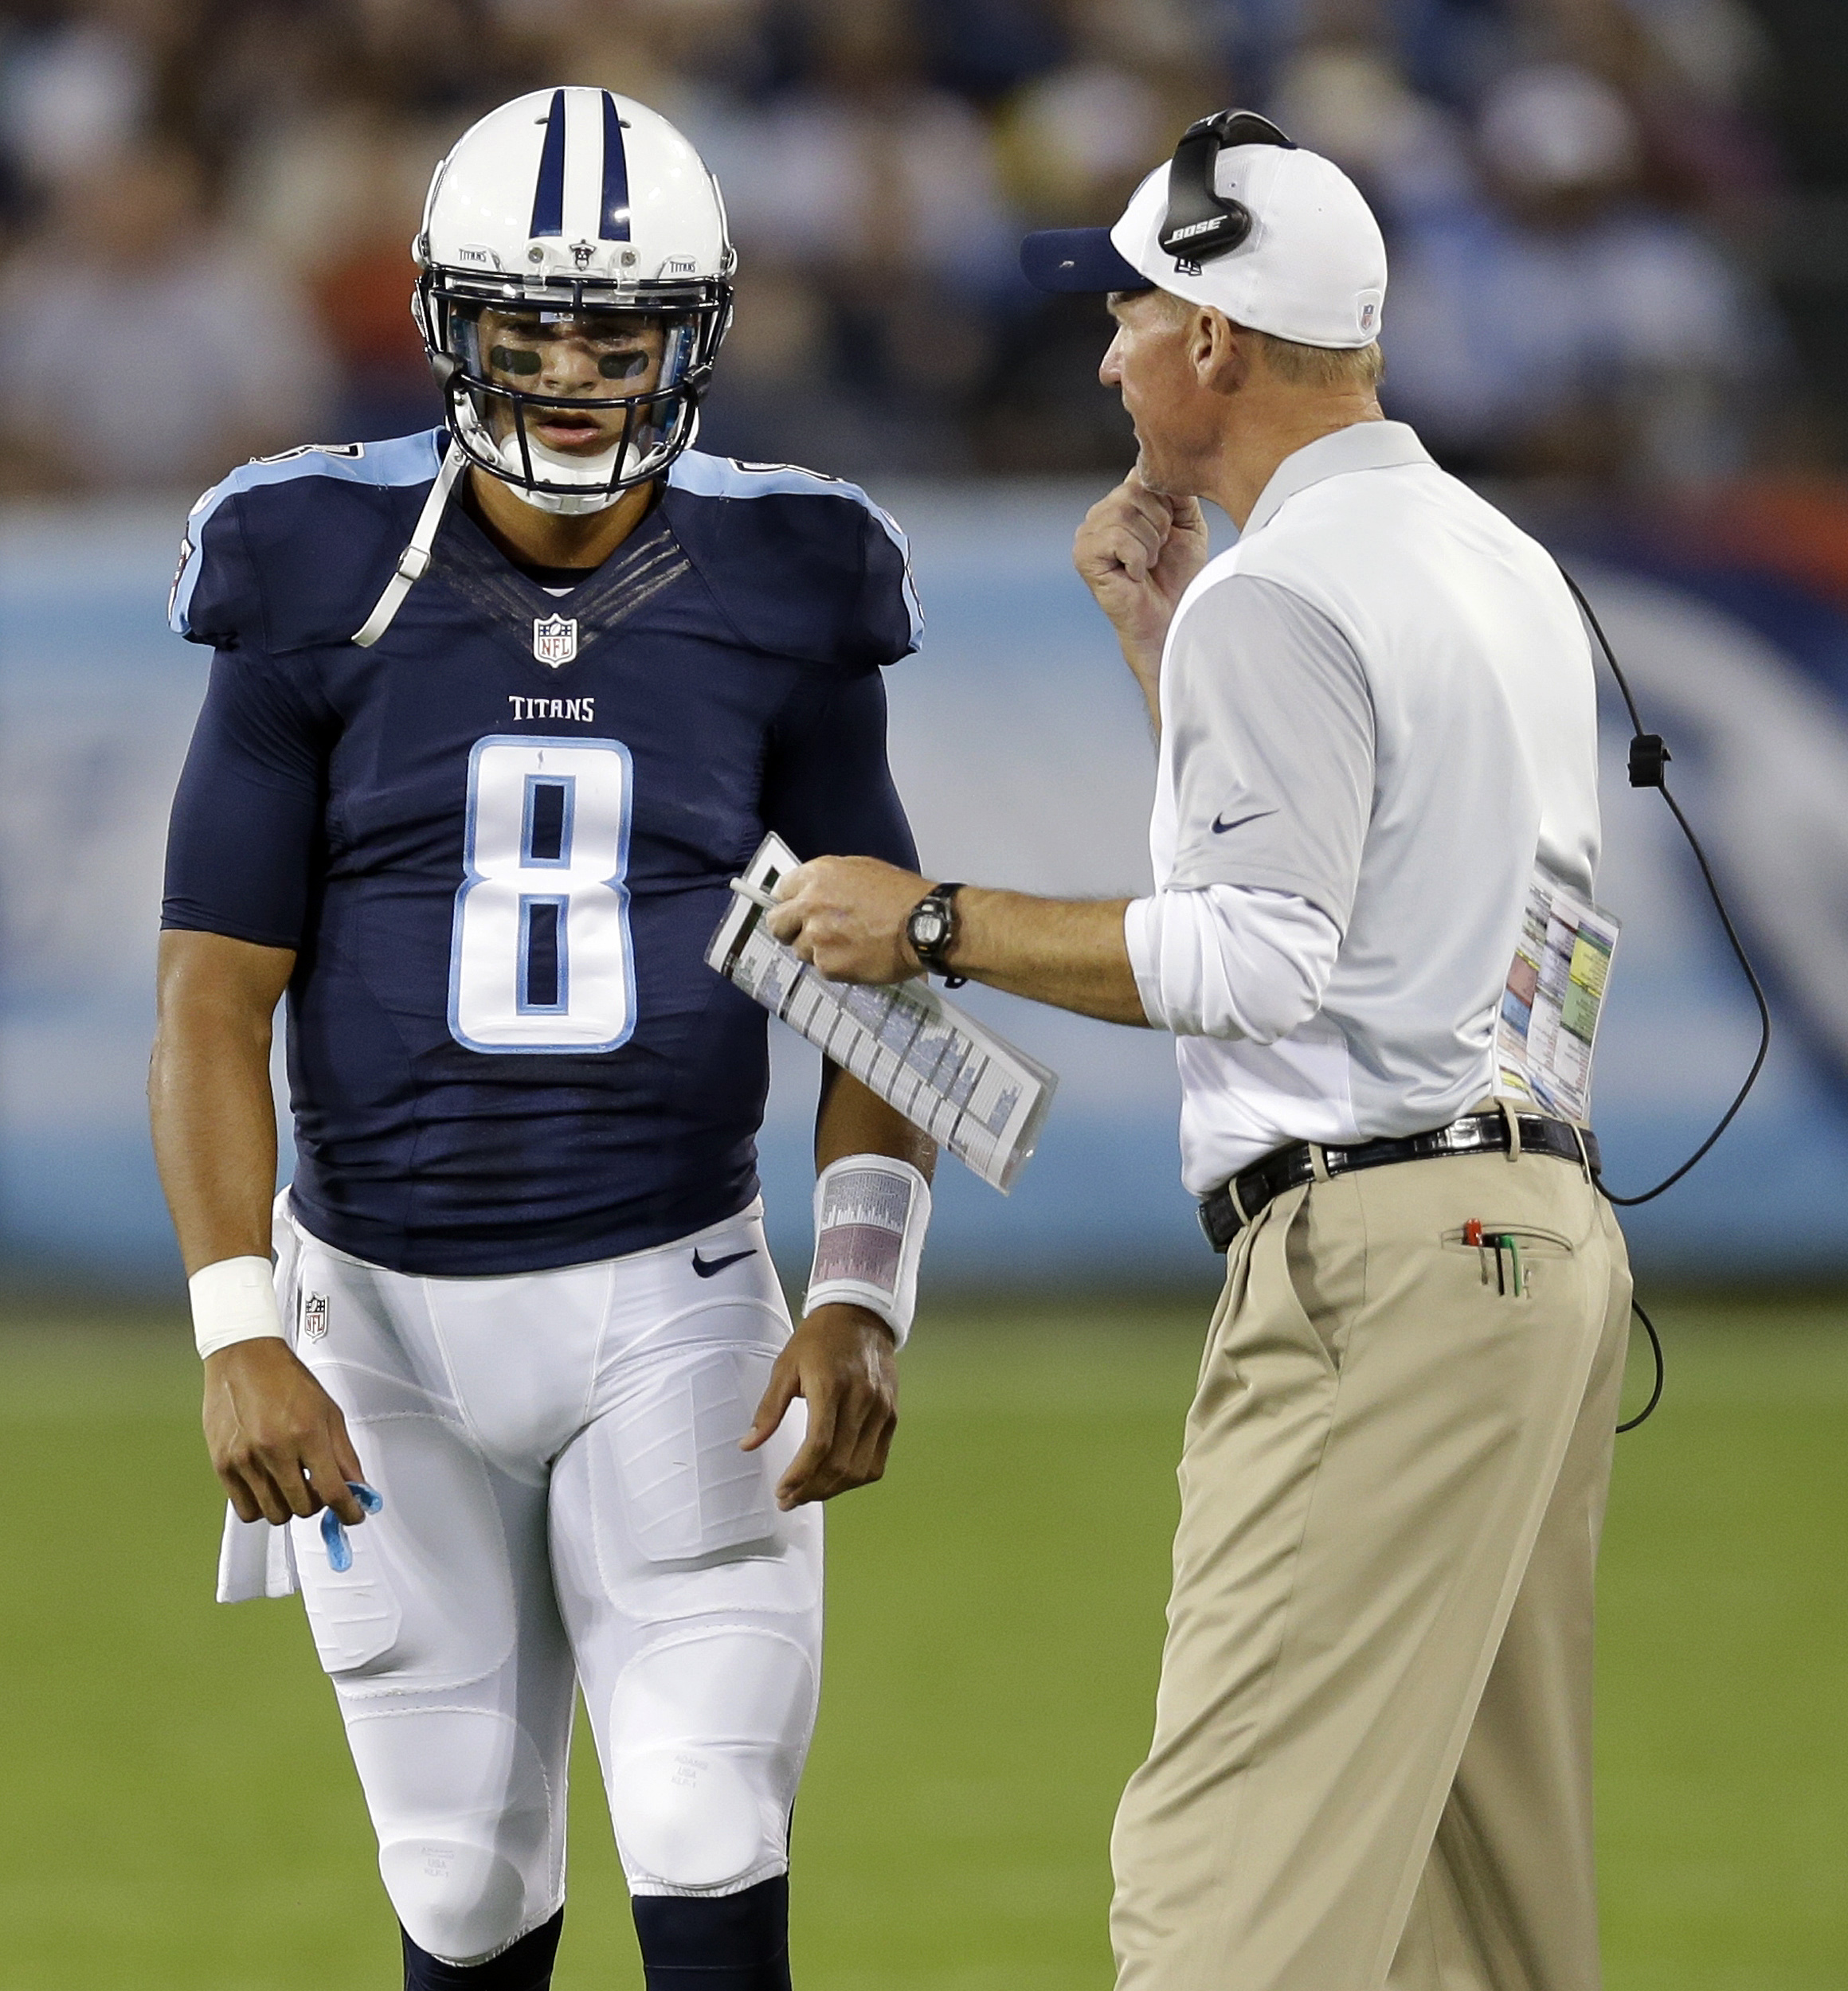 Tennessee Titans coach Ken Whisenhunt talks with quarterback Marcus Mariota during the first half of a preseason NFL football game against the St. Louis Rams on Sunday, Aug. 23, 2015, in Nashville, Tenn. (AP Photo/James Kenney)